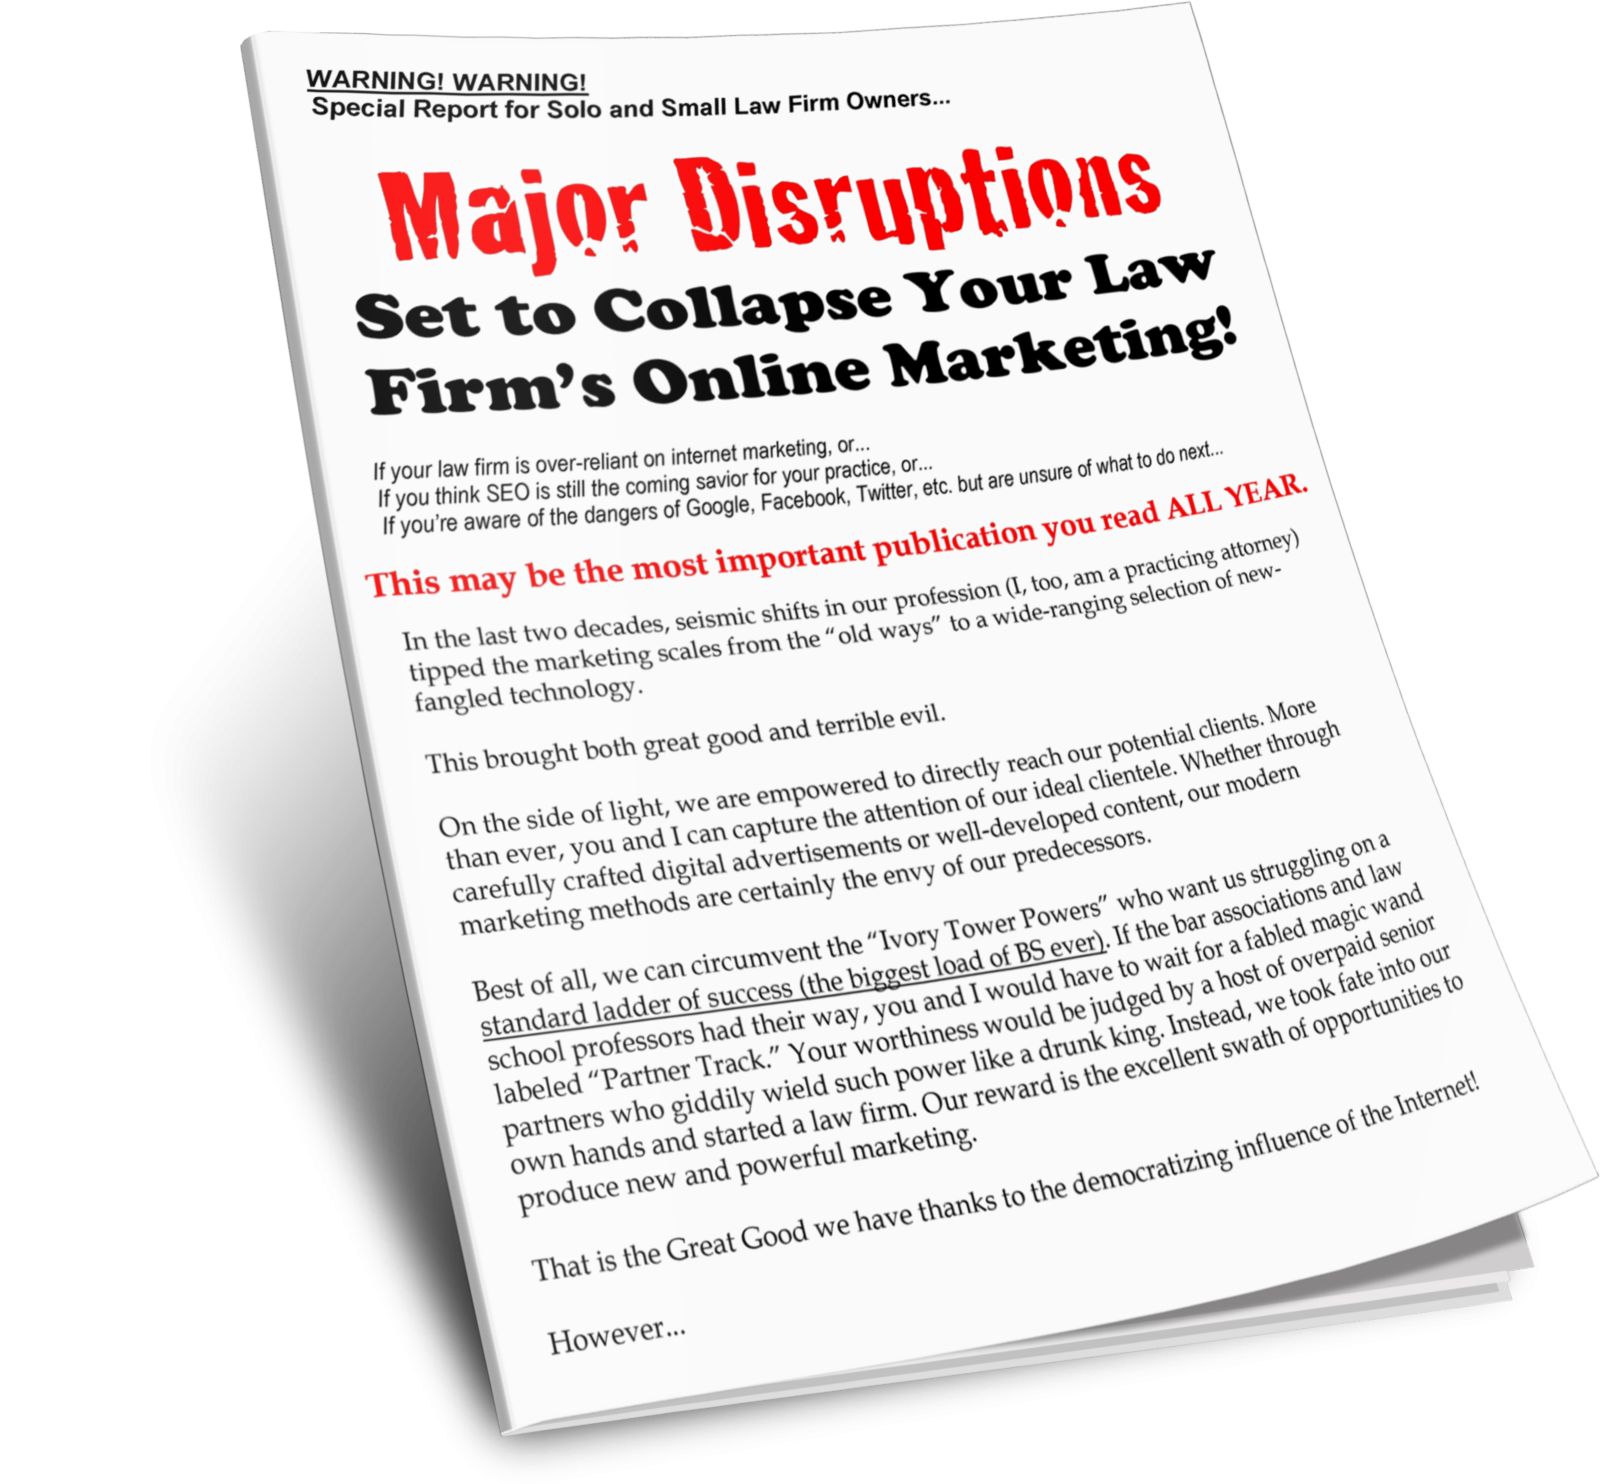 Discover the Major Disruptions Set to Collapse Your Law Firm's Online Marketing right now…